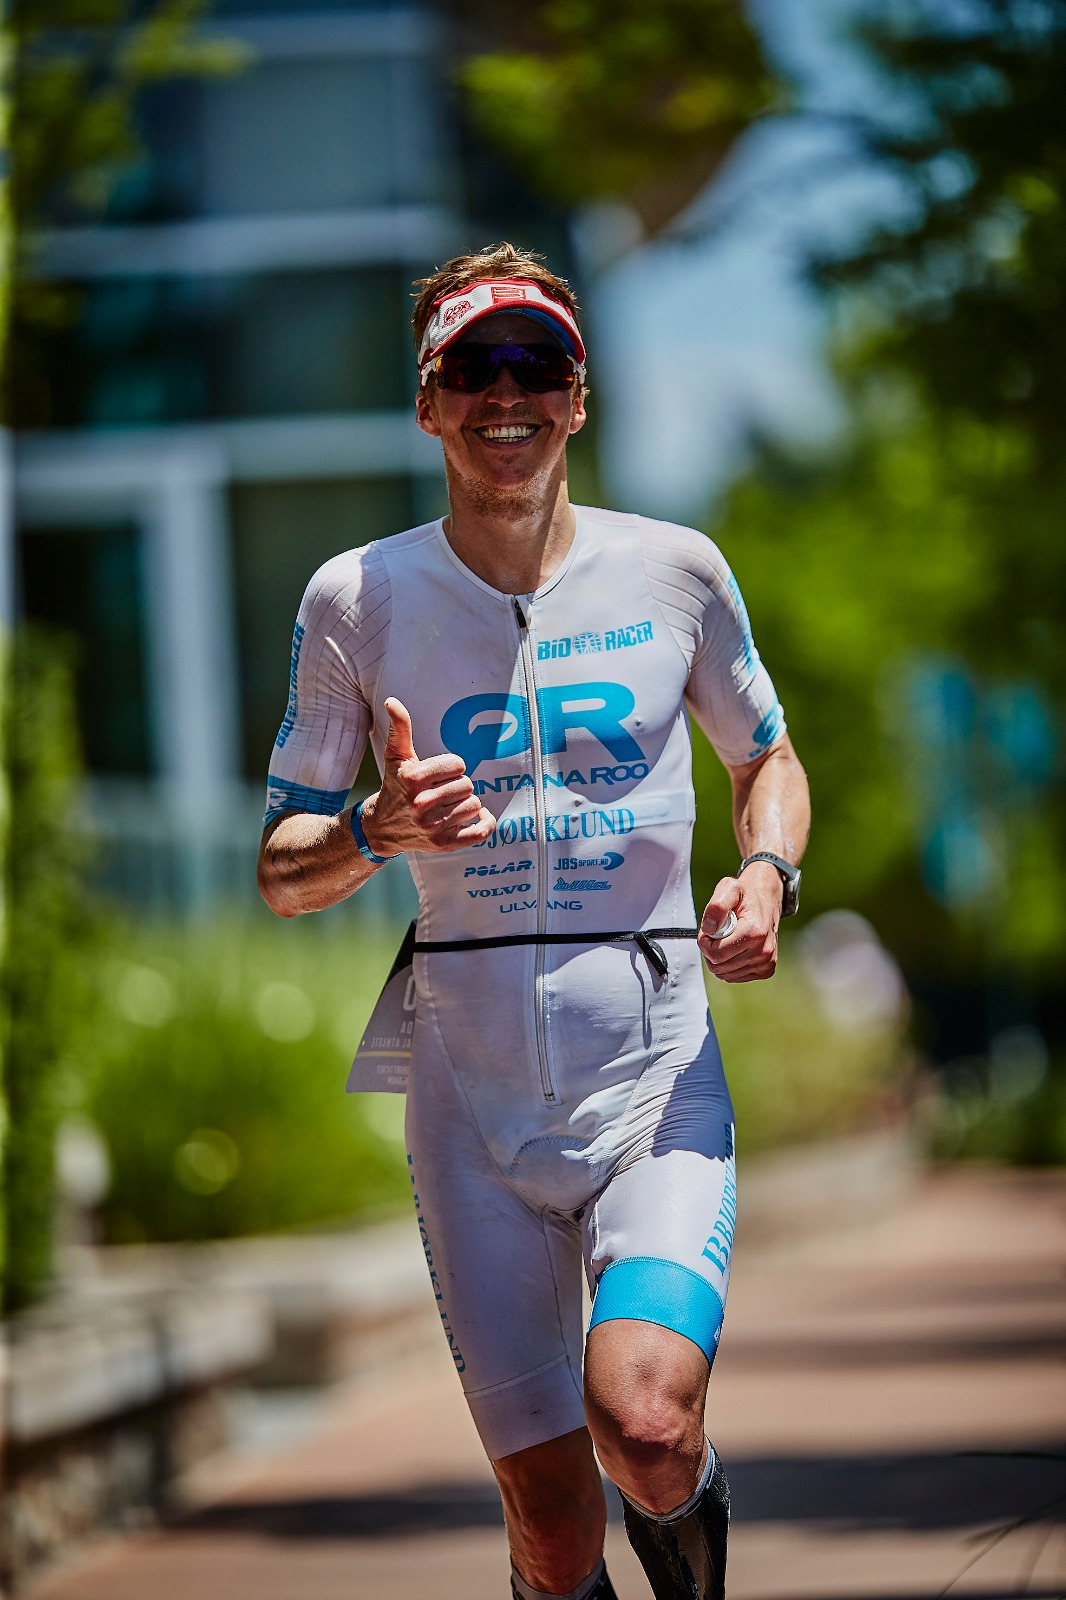 Race report – Ironman Texas 2019